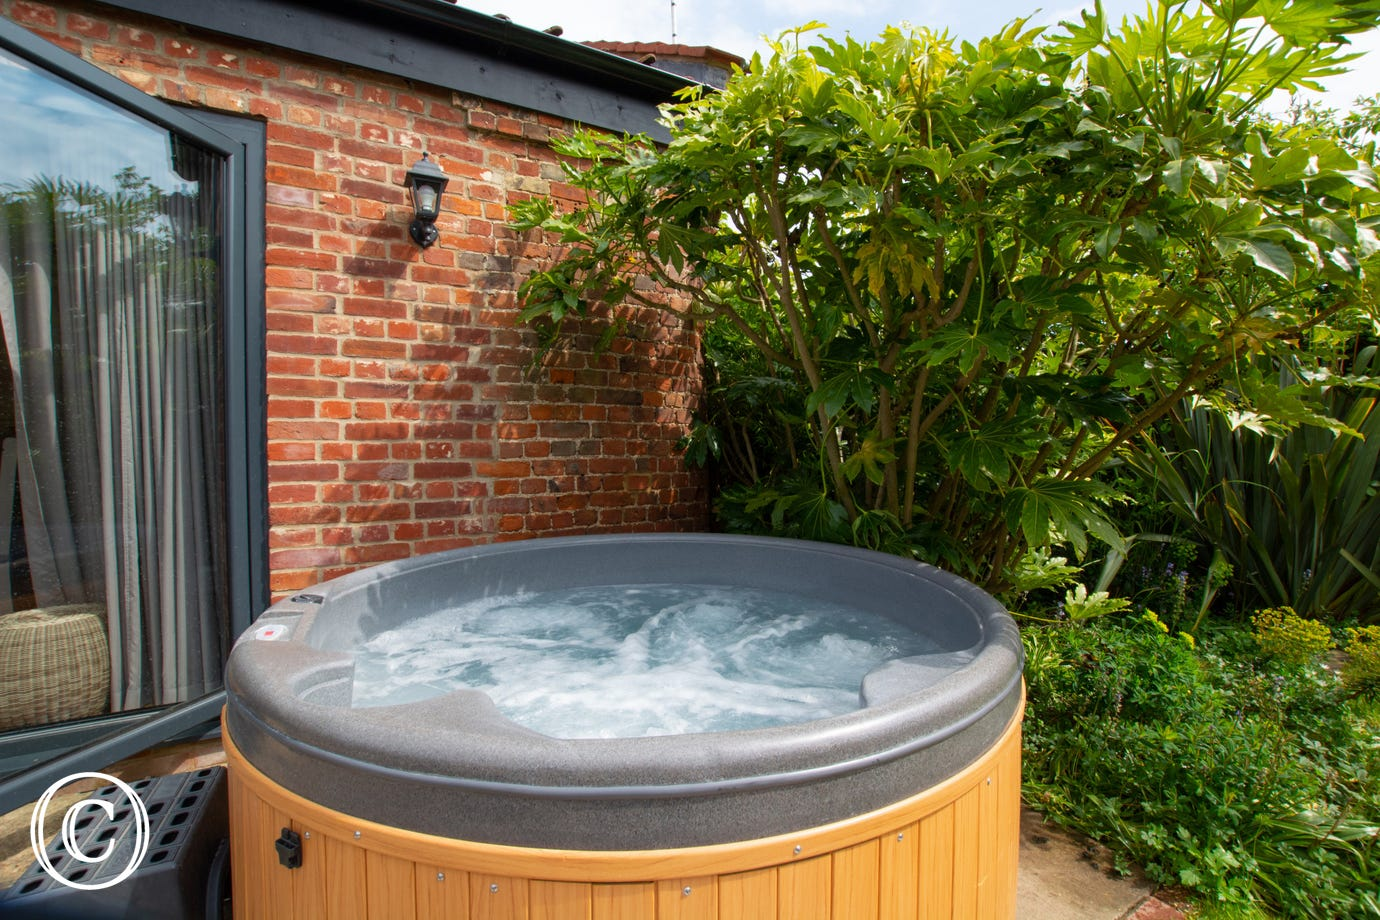 Unwind at the end of the day in the outdoor hot tub